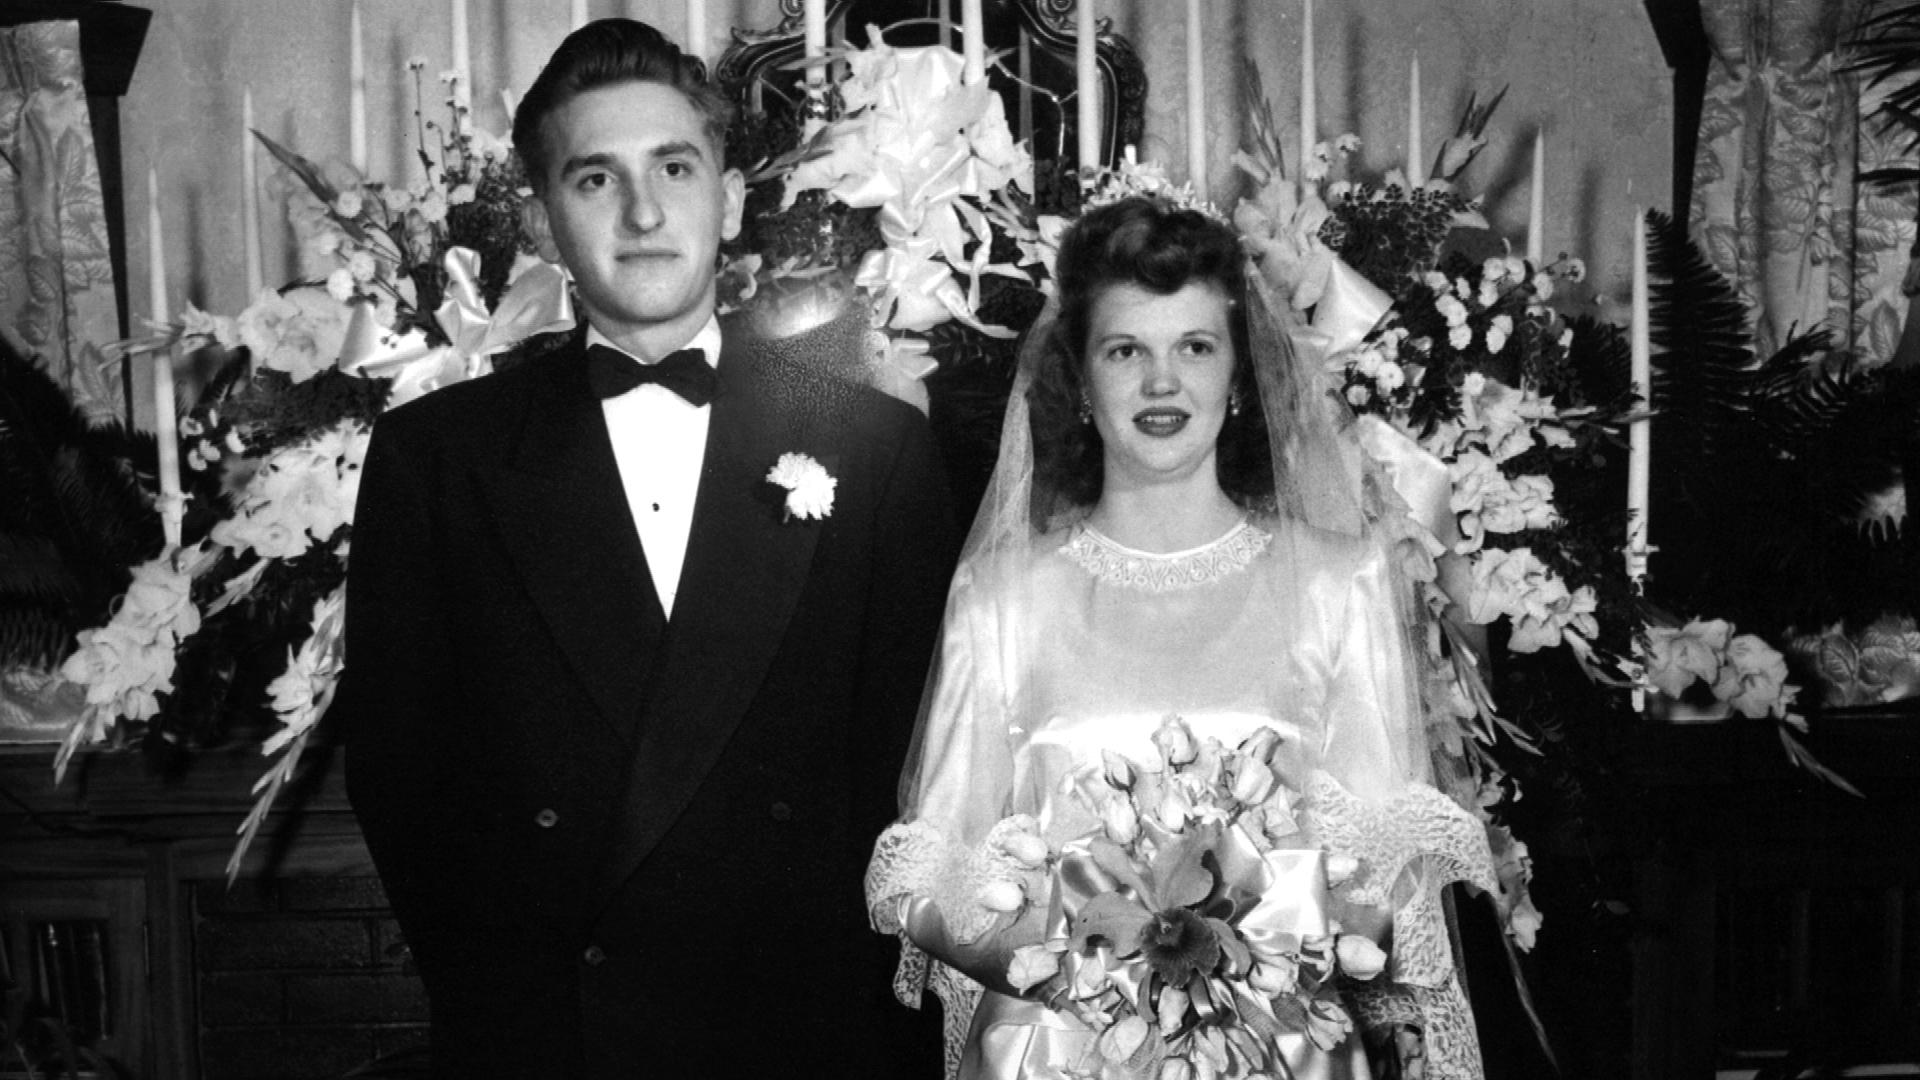 Thomas S. Monson married Frances Beverly Johnson in the Salt Lake Temple, October 7, 1948. (Photo: MormonNewsroom.org)<p></p>